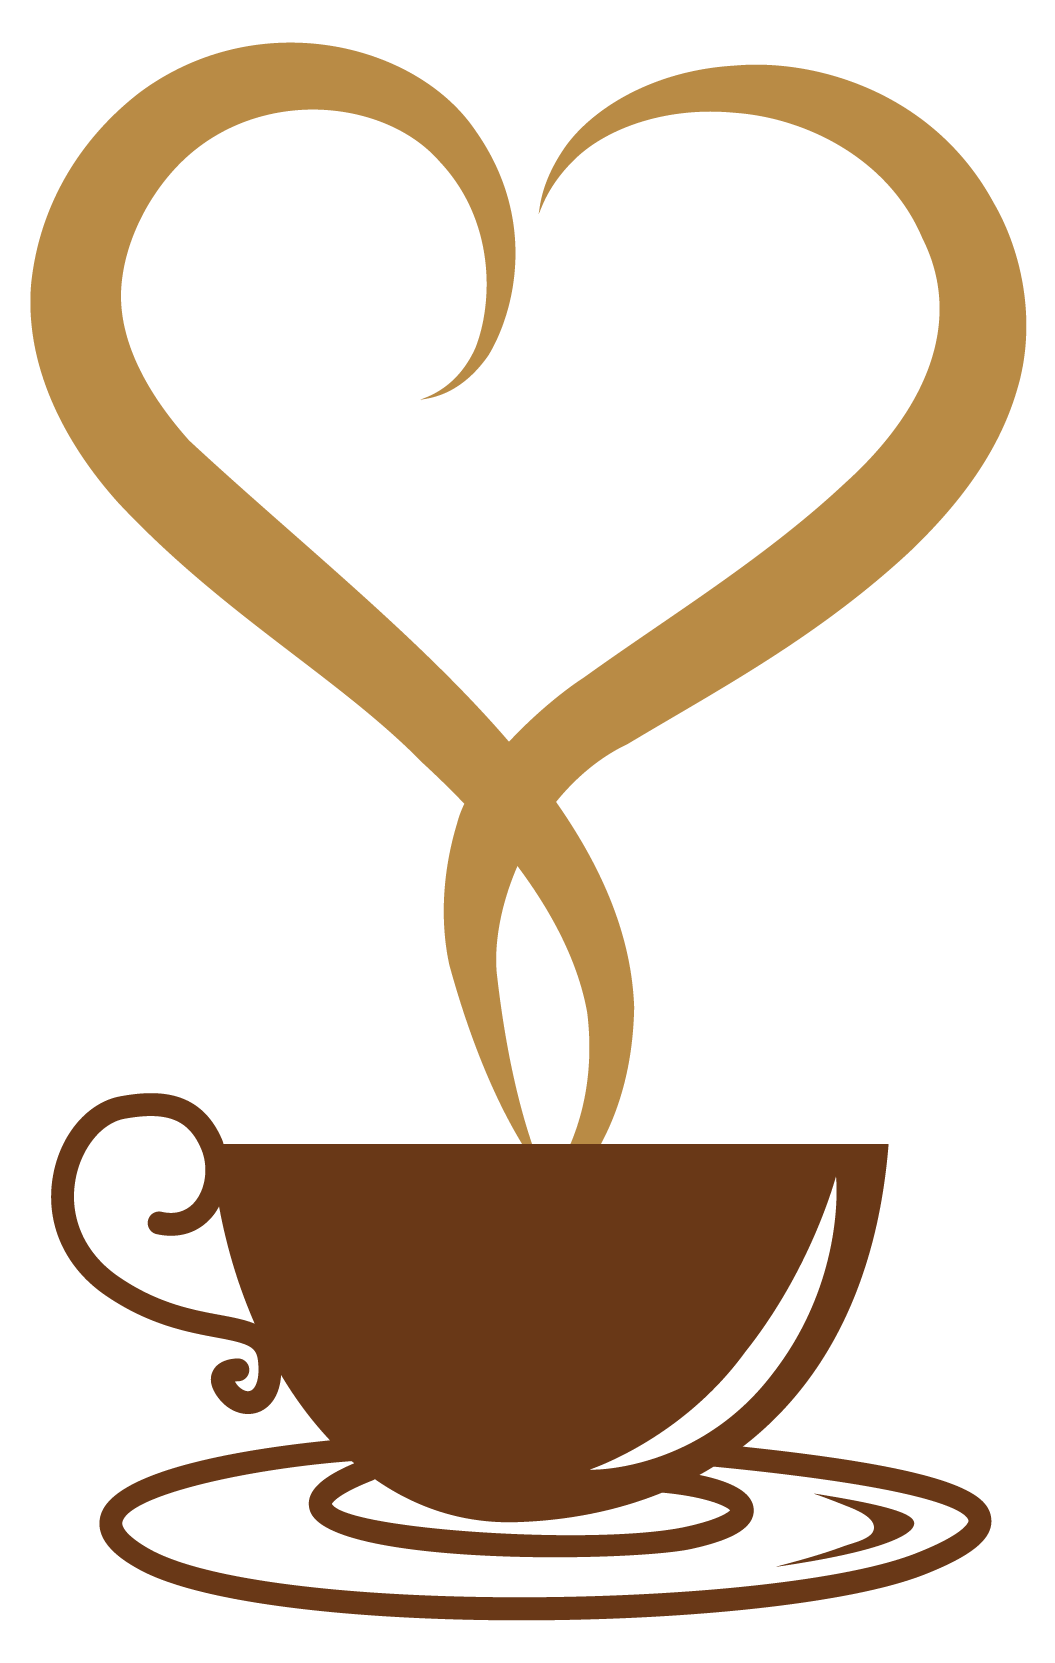 coffee cup clipart heart